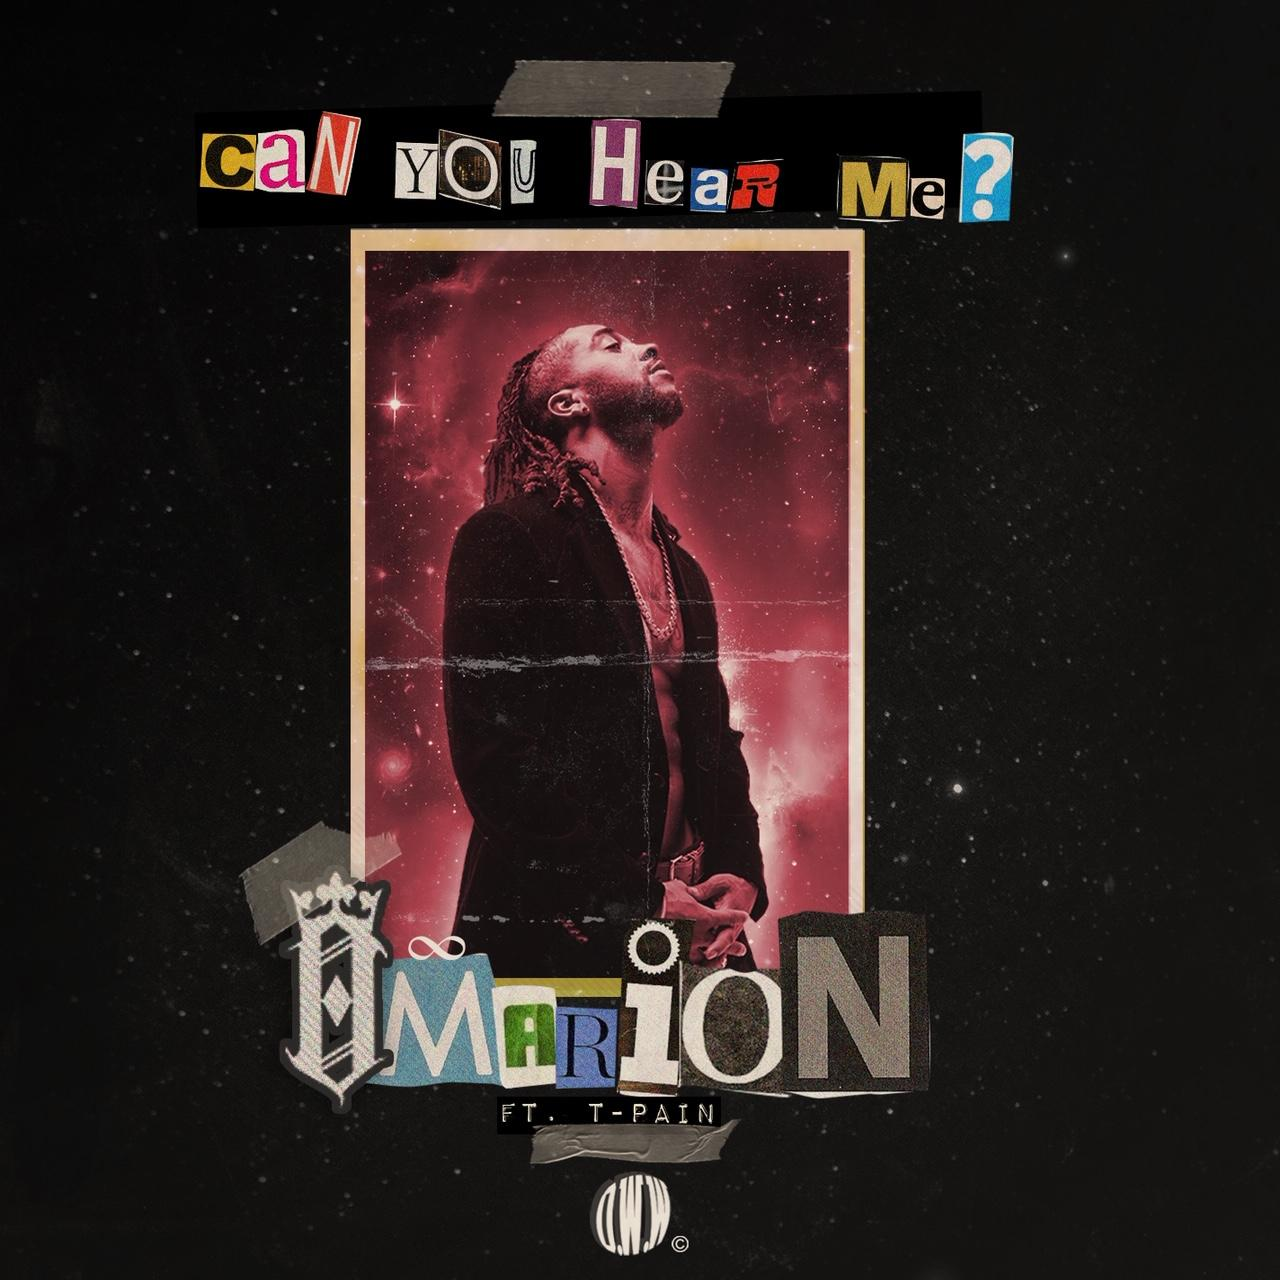 Omarion – Can You Hear Me? (feat. T-Pain)